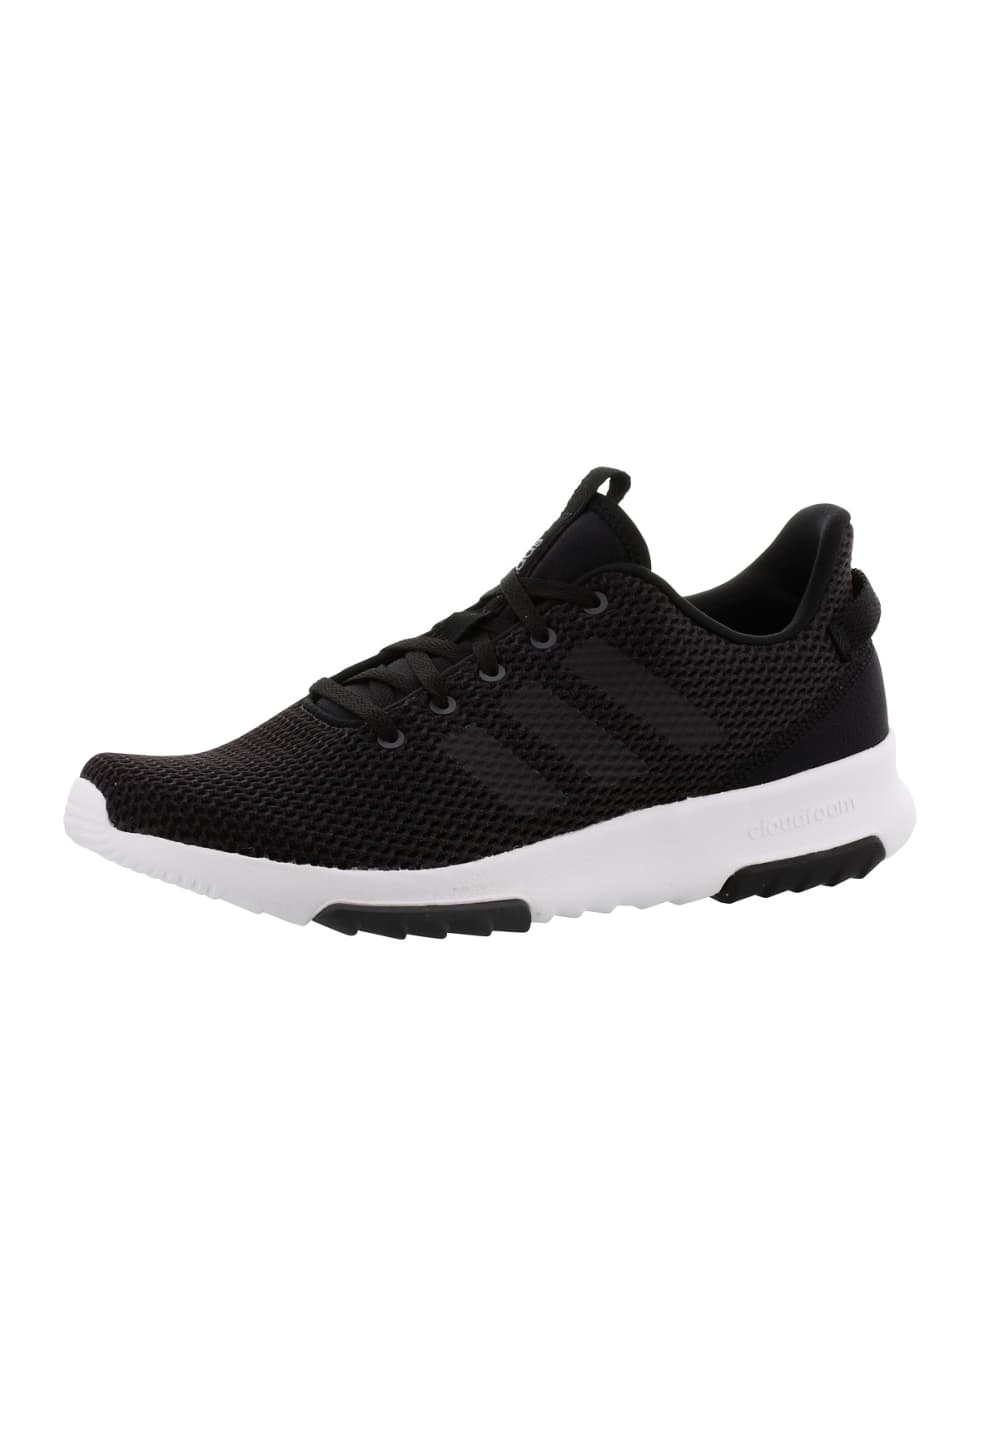 adidas neo Cf Racer Tr Chaussures running pour Homme